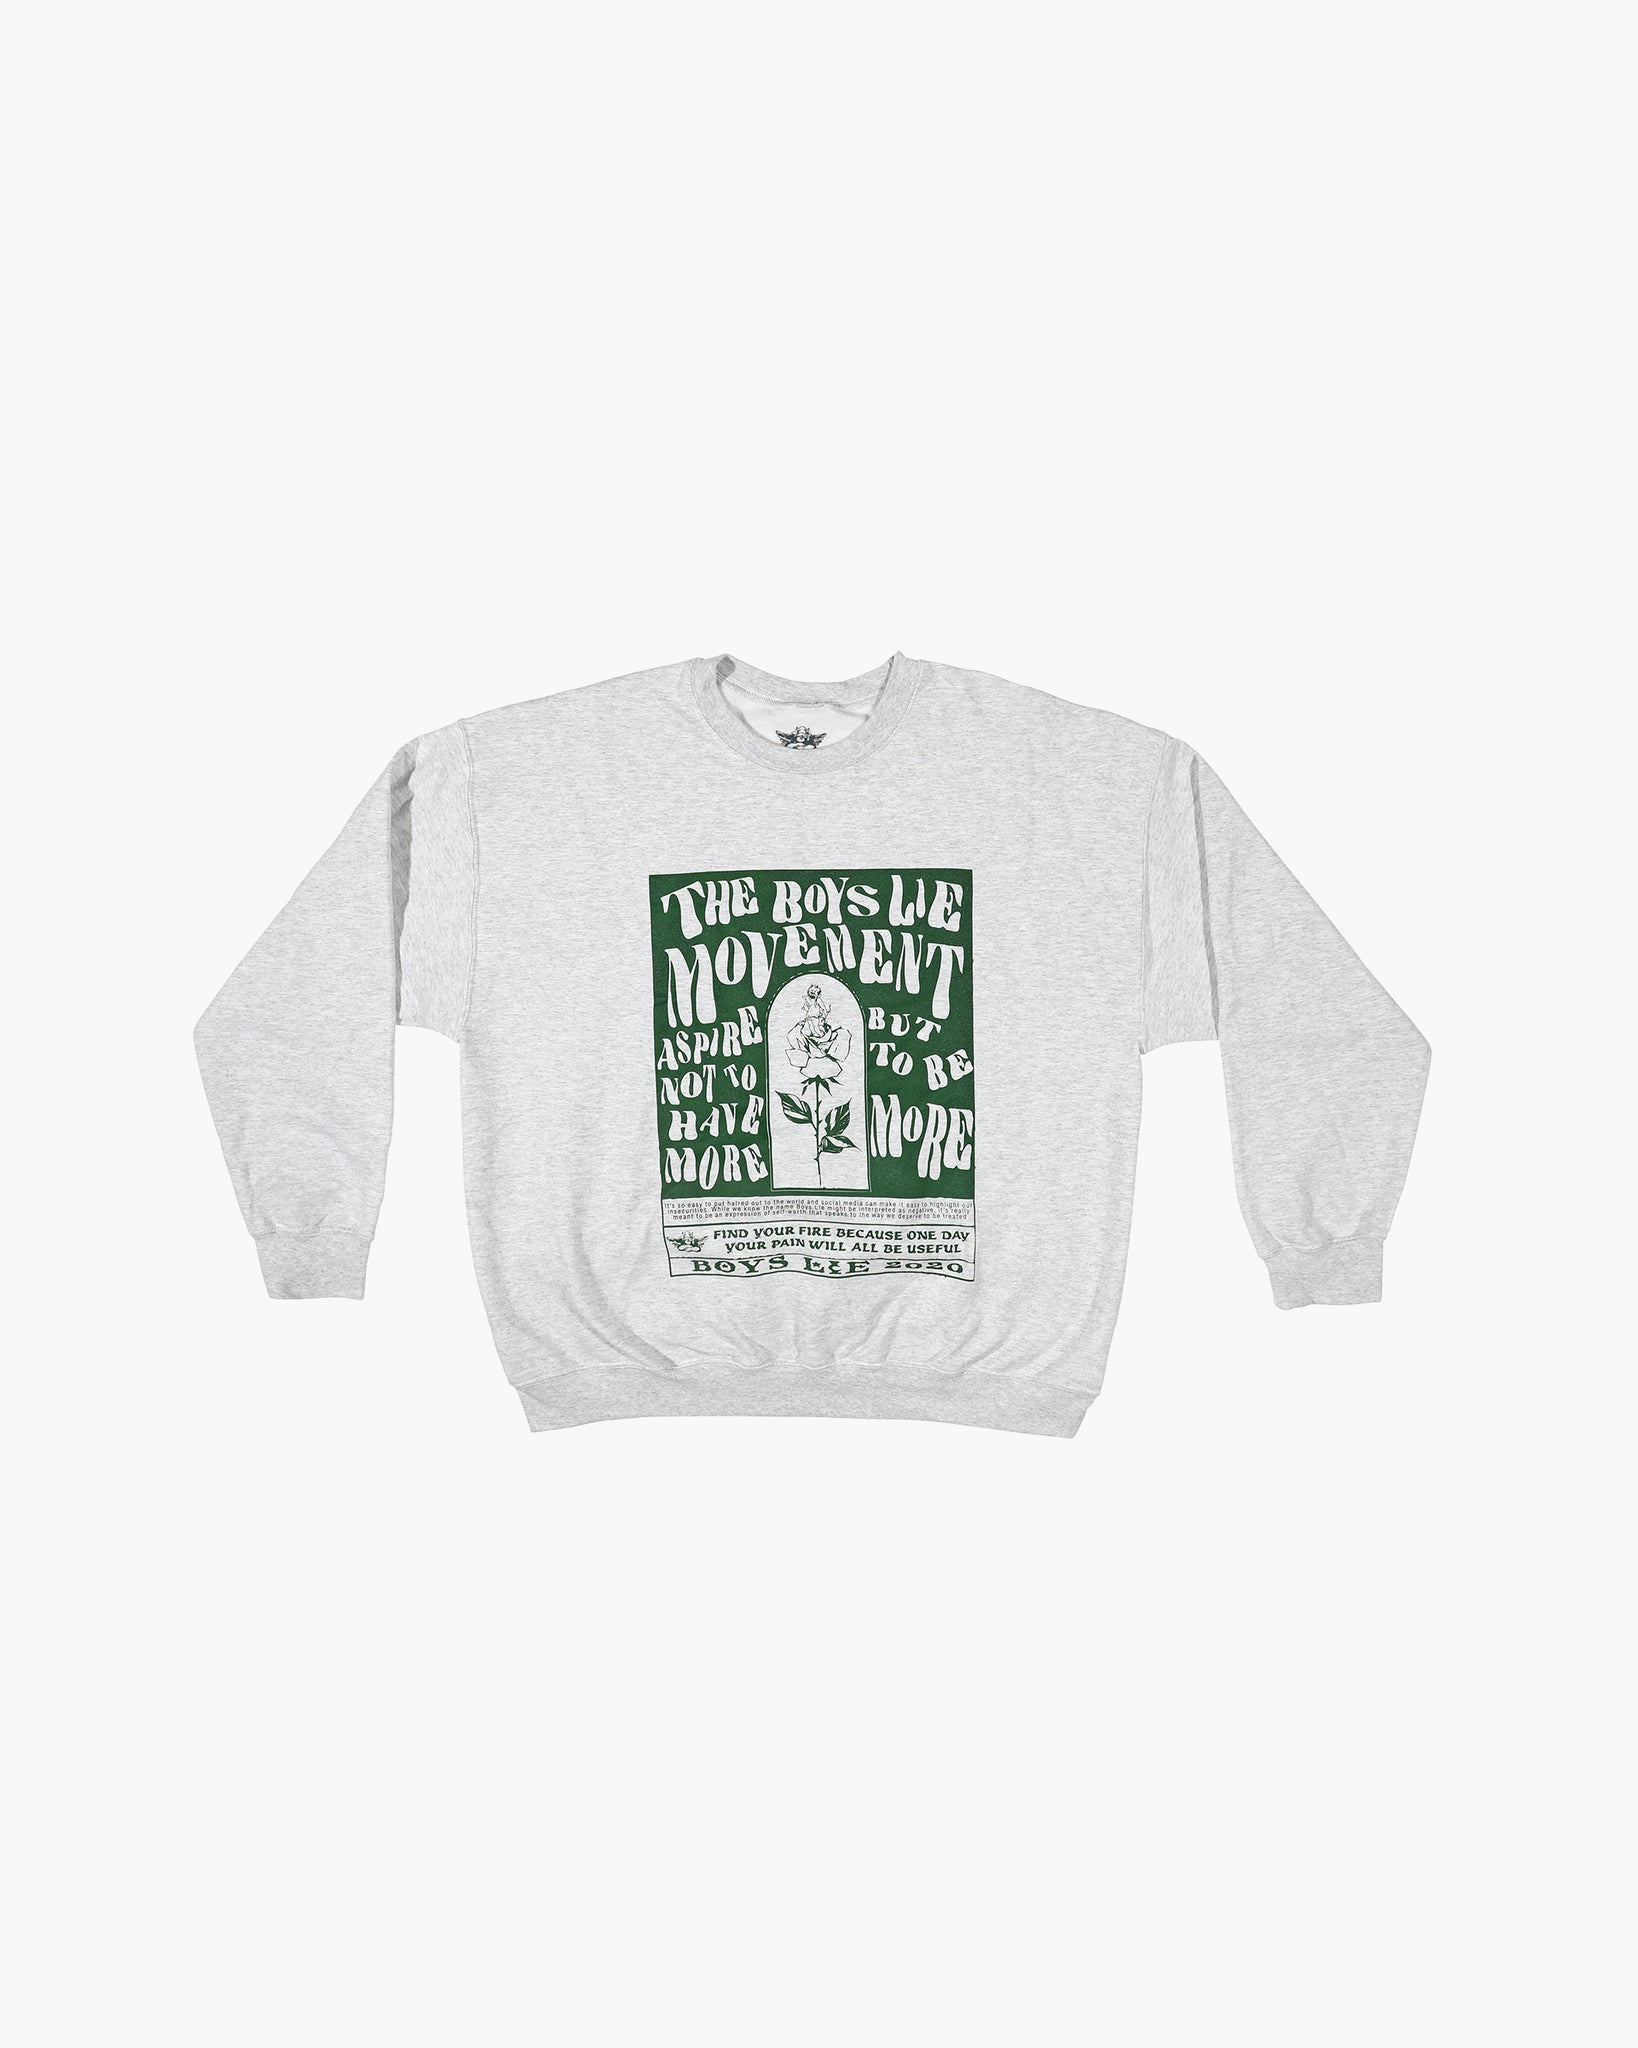 Grey Boys Lie Movement G1 Crewneck